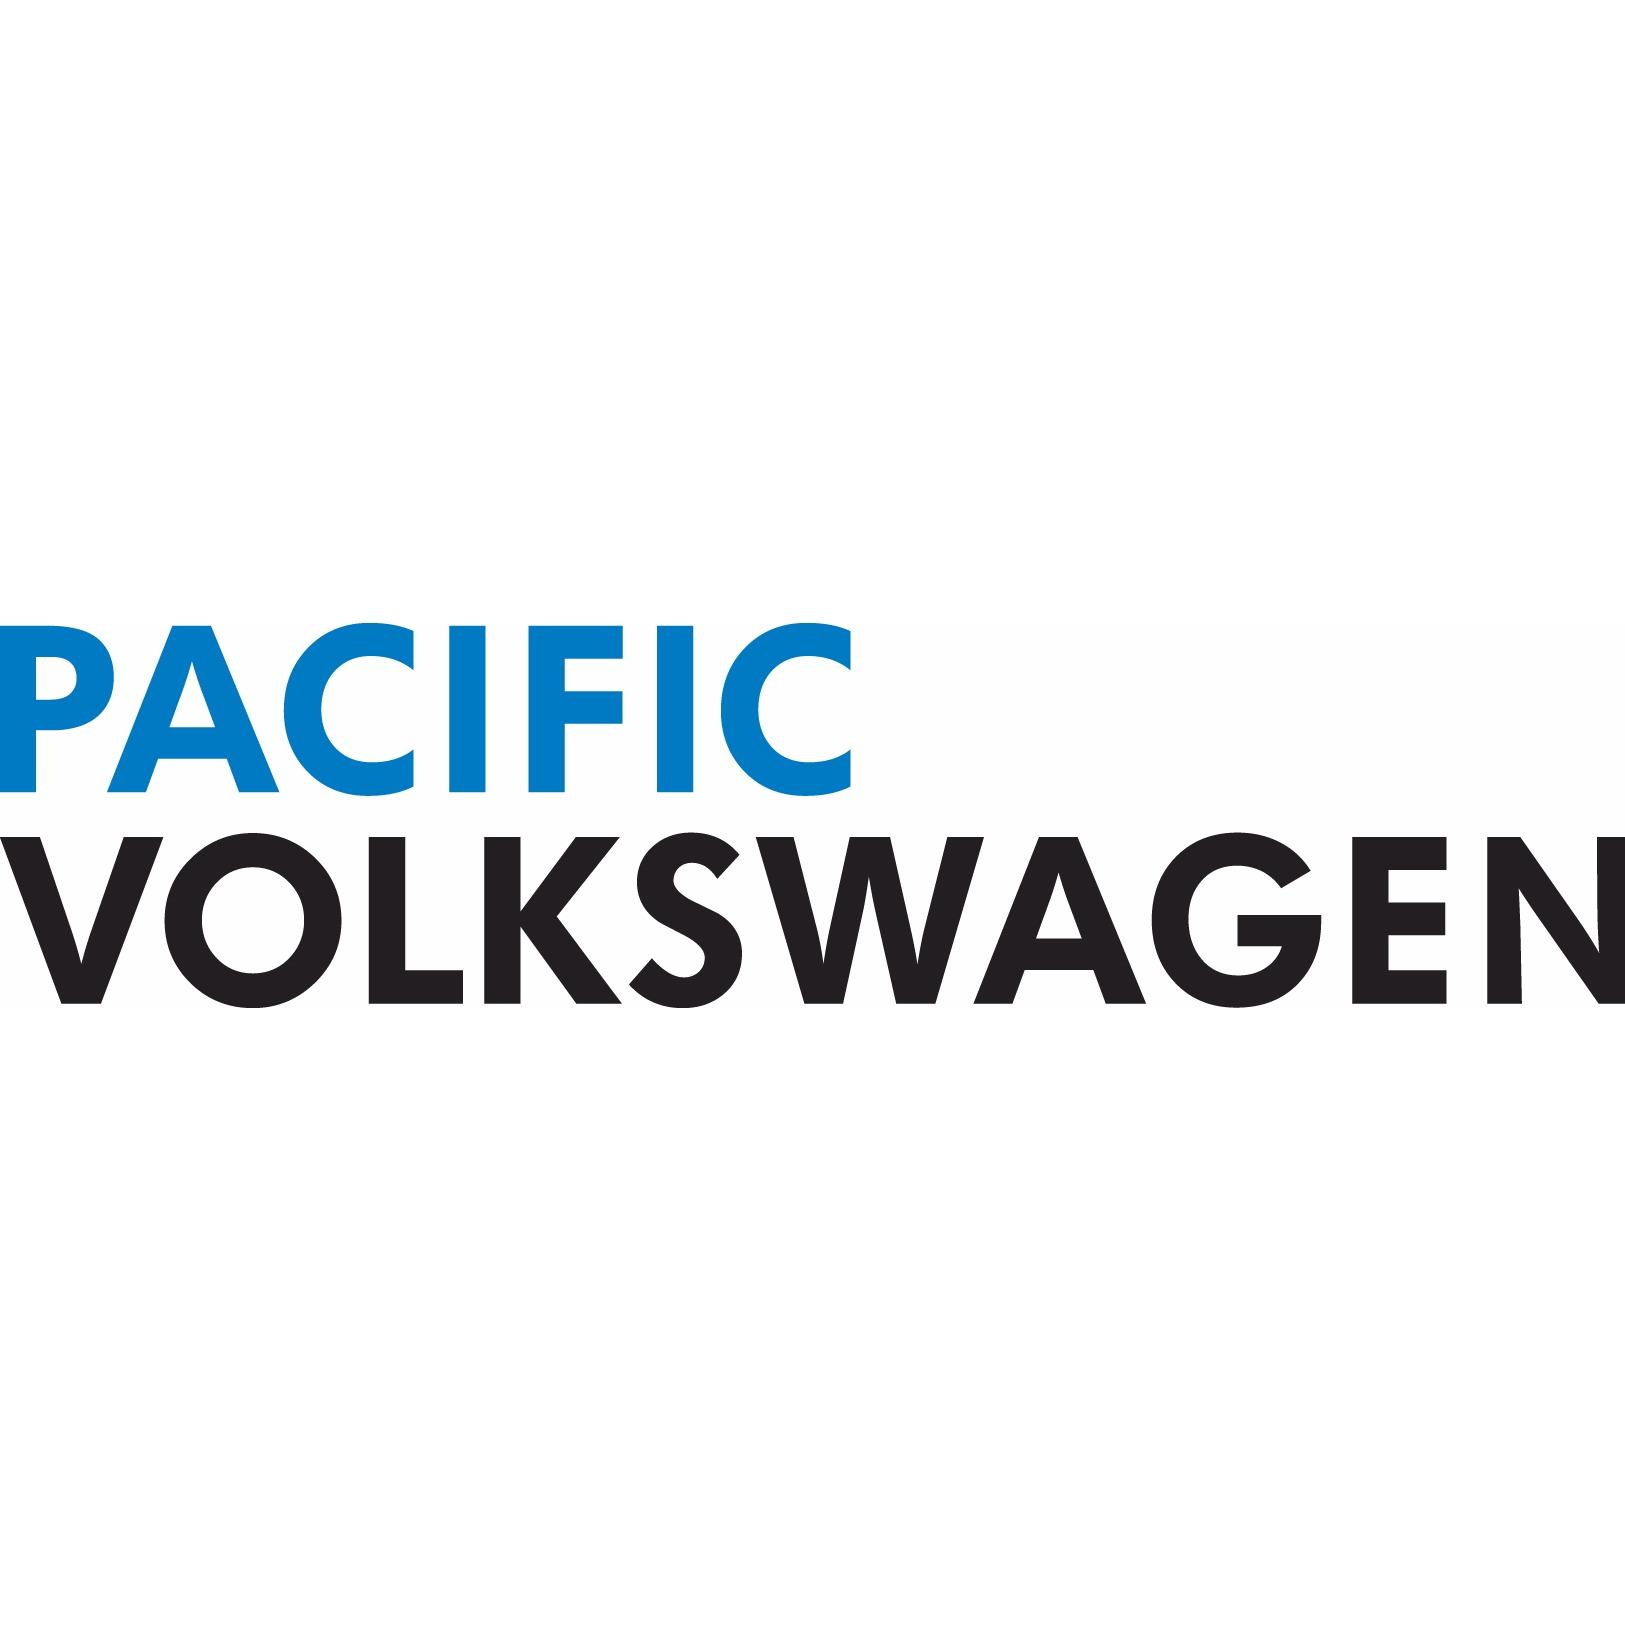 pacific volkswagen - hawthorne, CA - Auto Body Repair & Painting